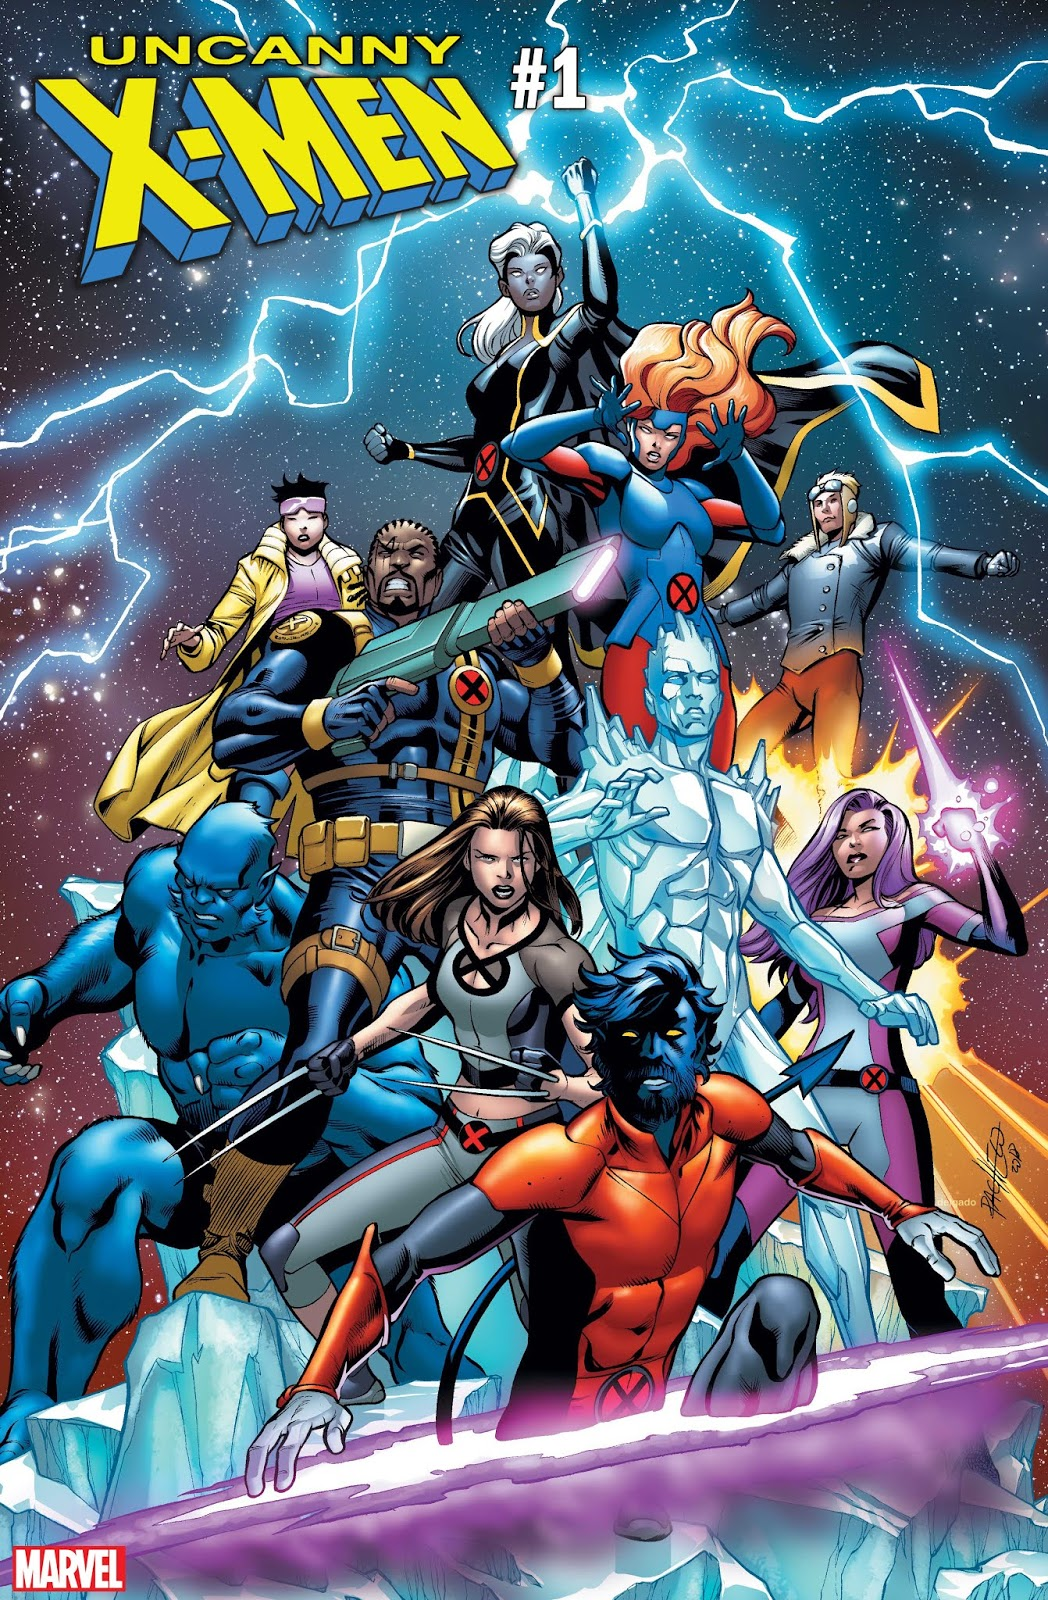 X-MEN #1 Cover from Carlos Pacheco